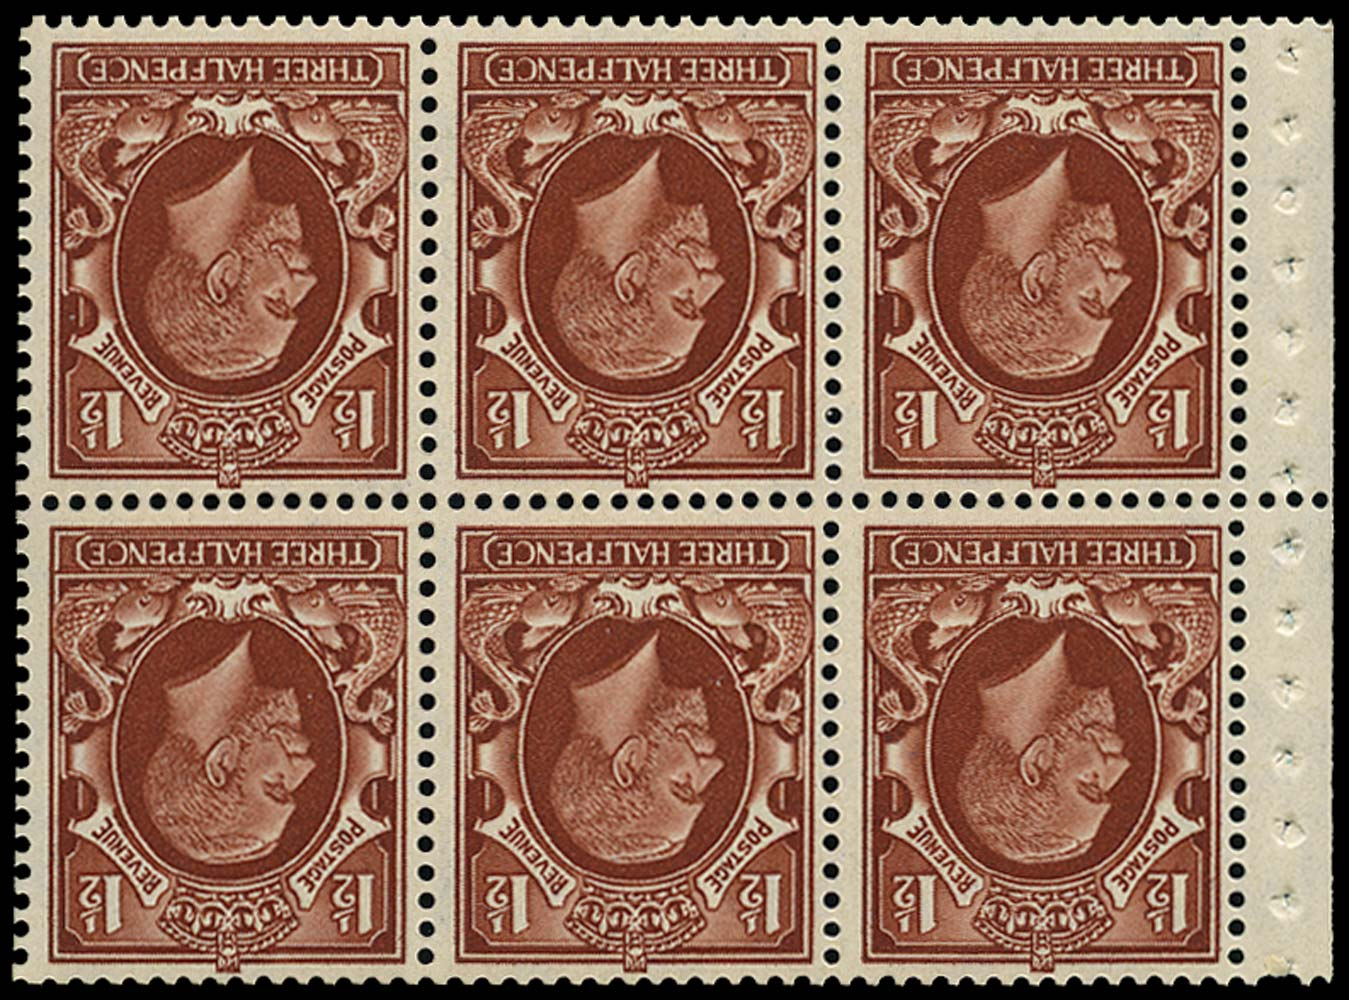 GB 1935  SG441fw Booklet pane (small format) Wmk. Inverted.